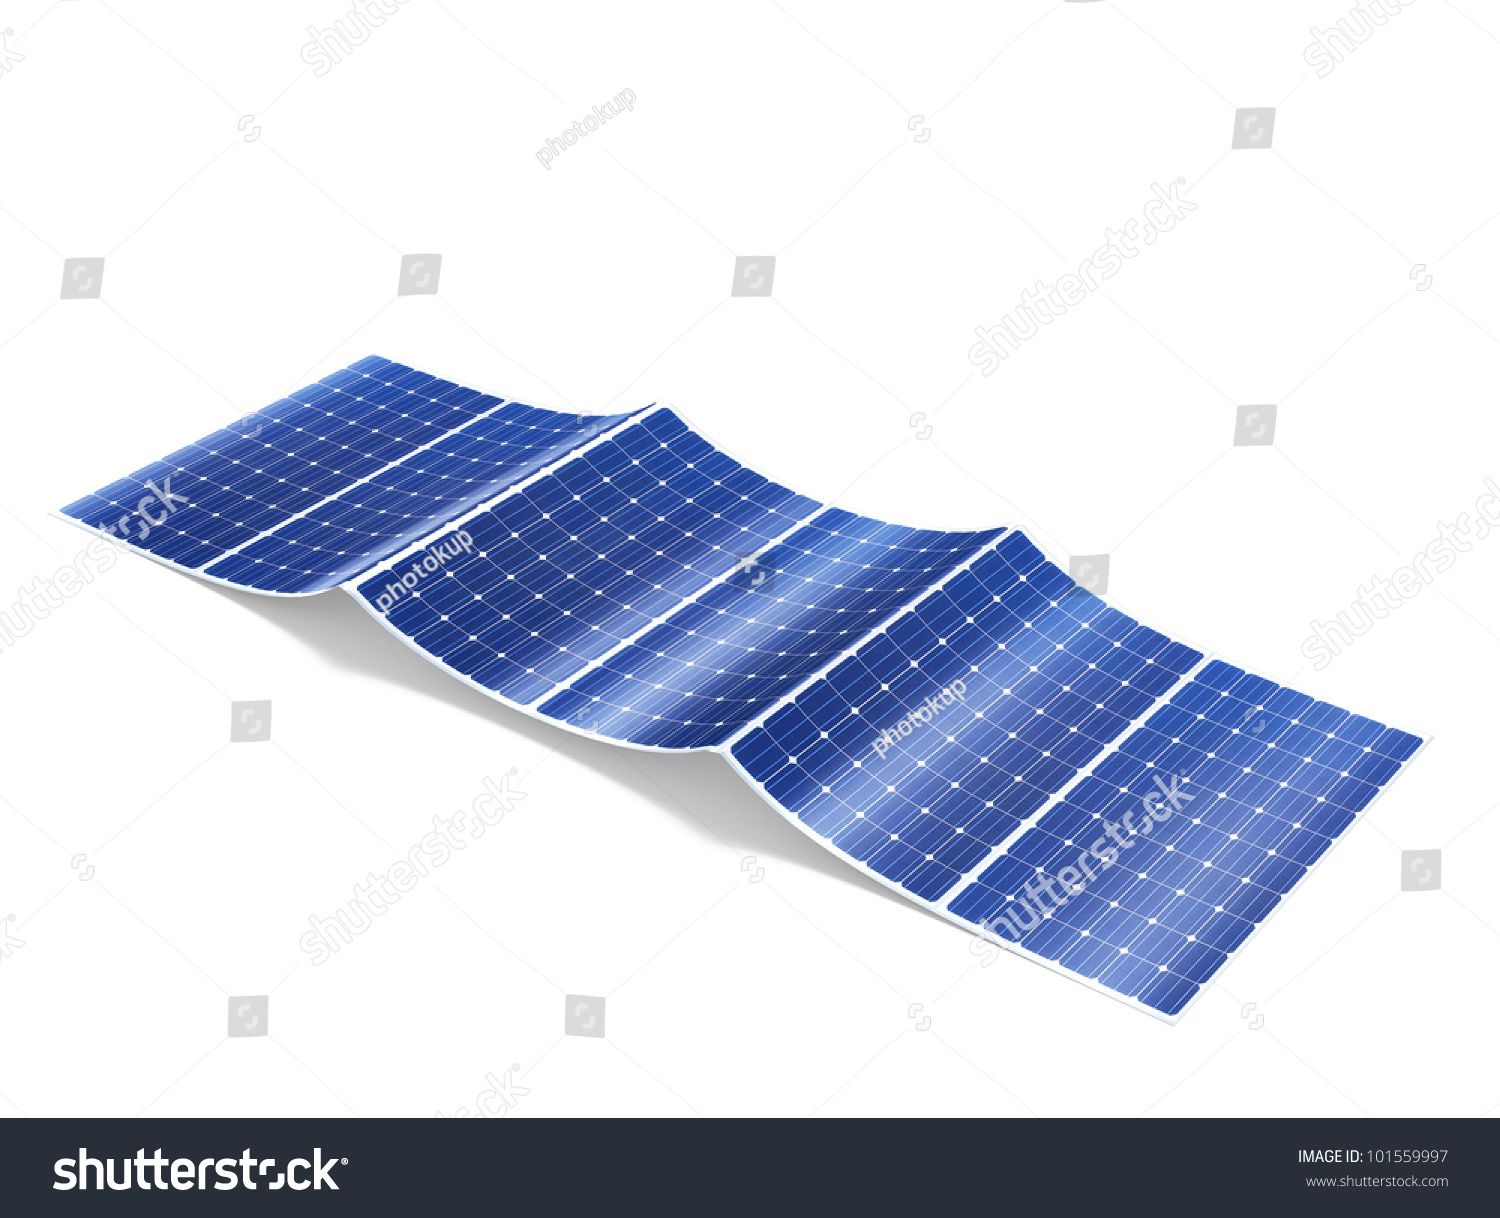 A Review Paper on Electricity Generation from Solar …